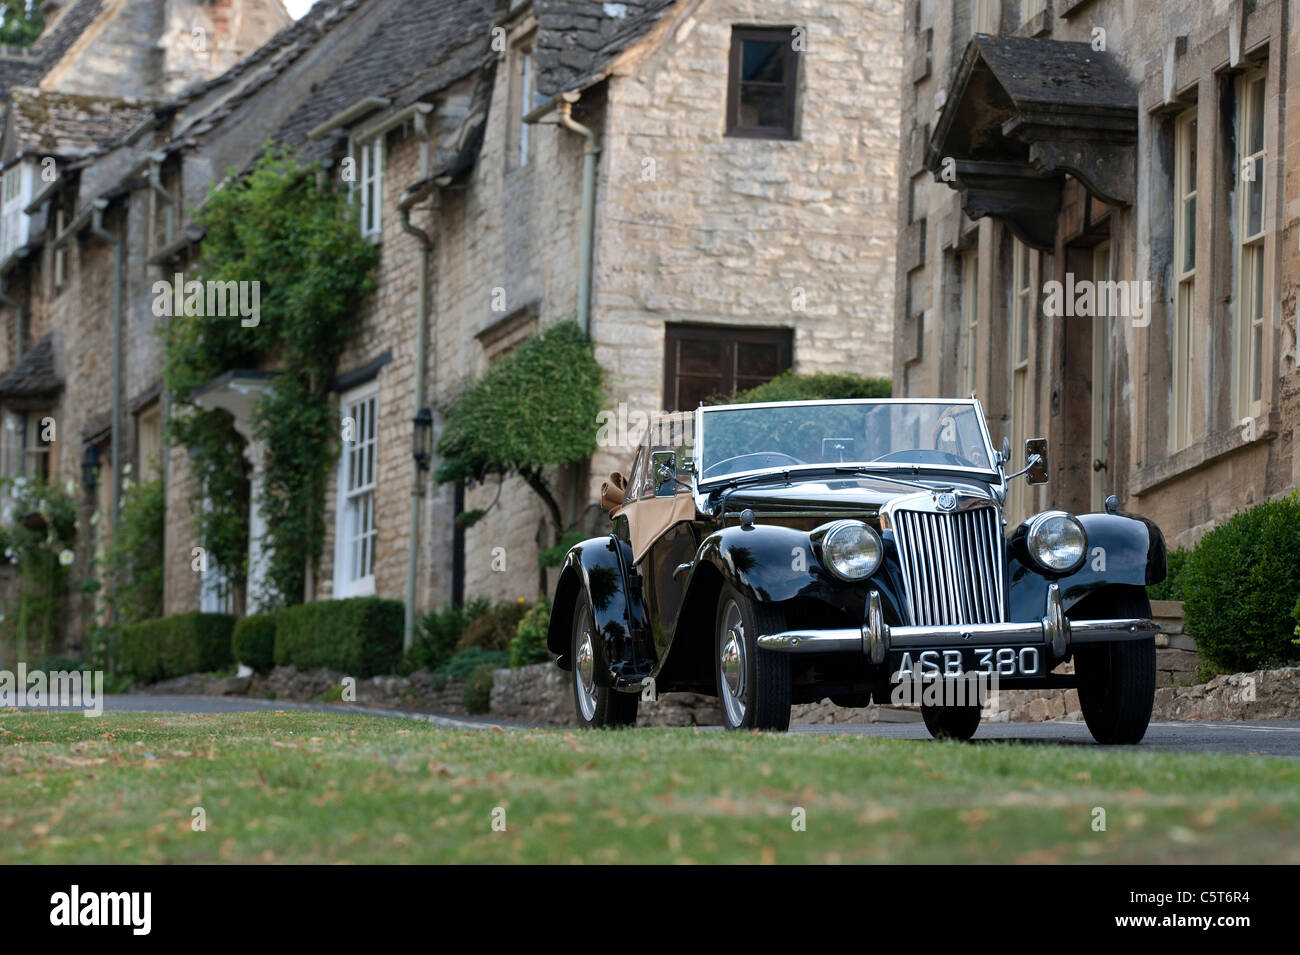 1955  Vintage MG TF 1500 car parked outside houses in the medieval town of Burford . Cotswolds, England - Stock Image